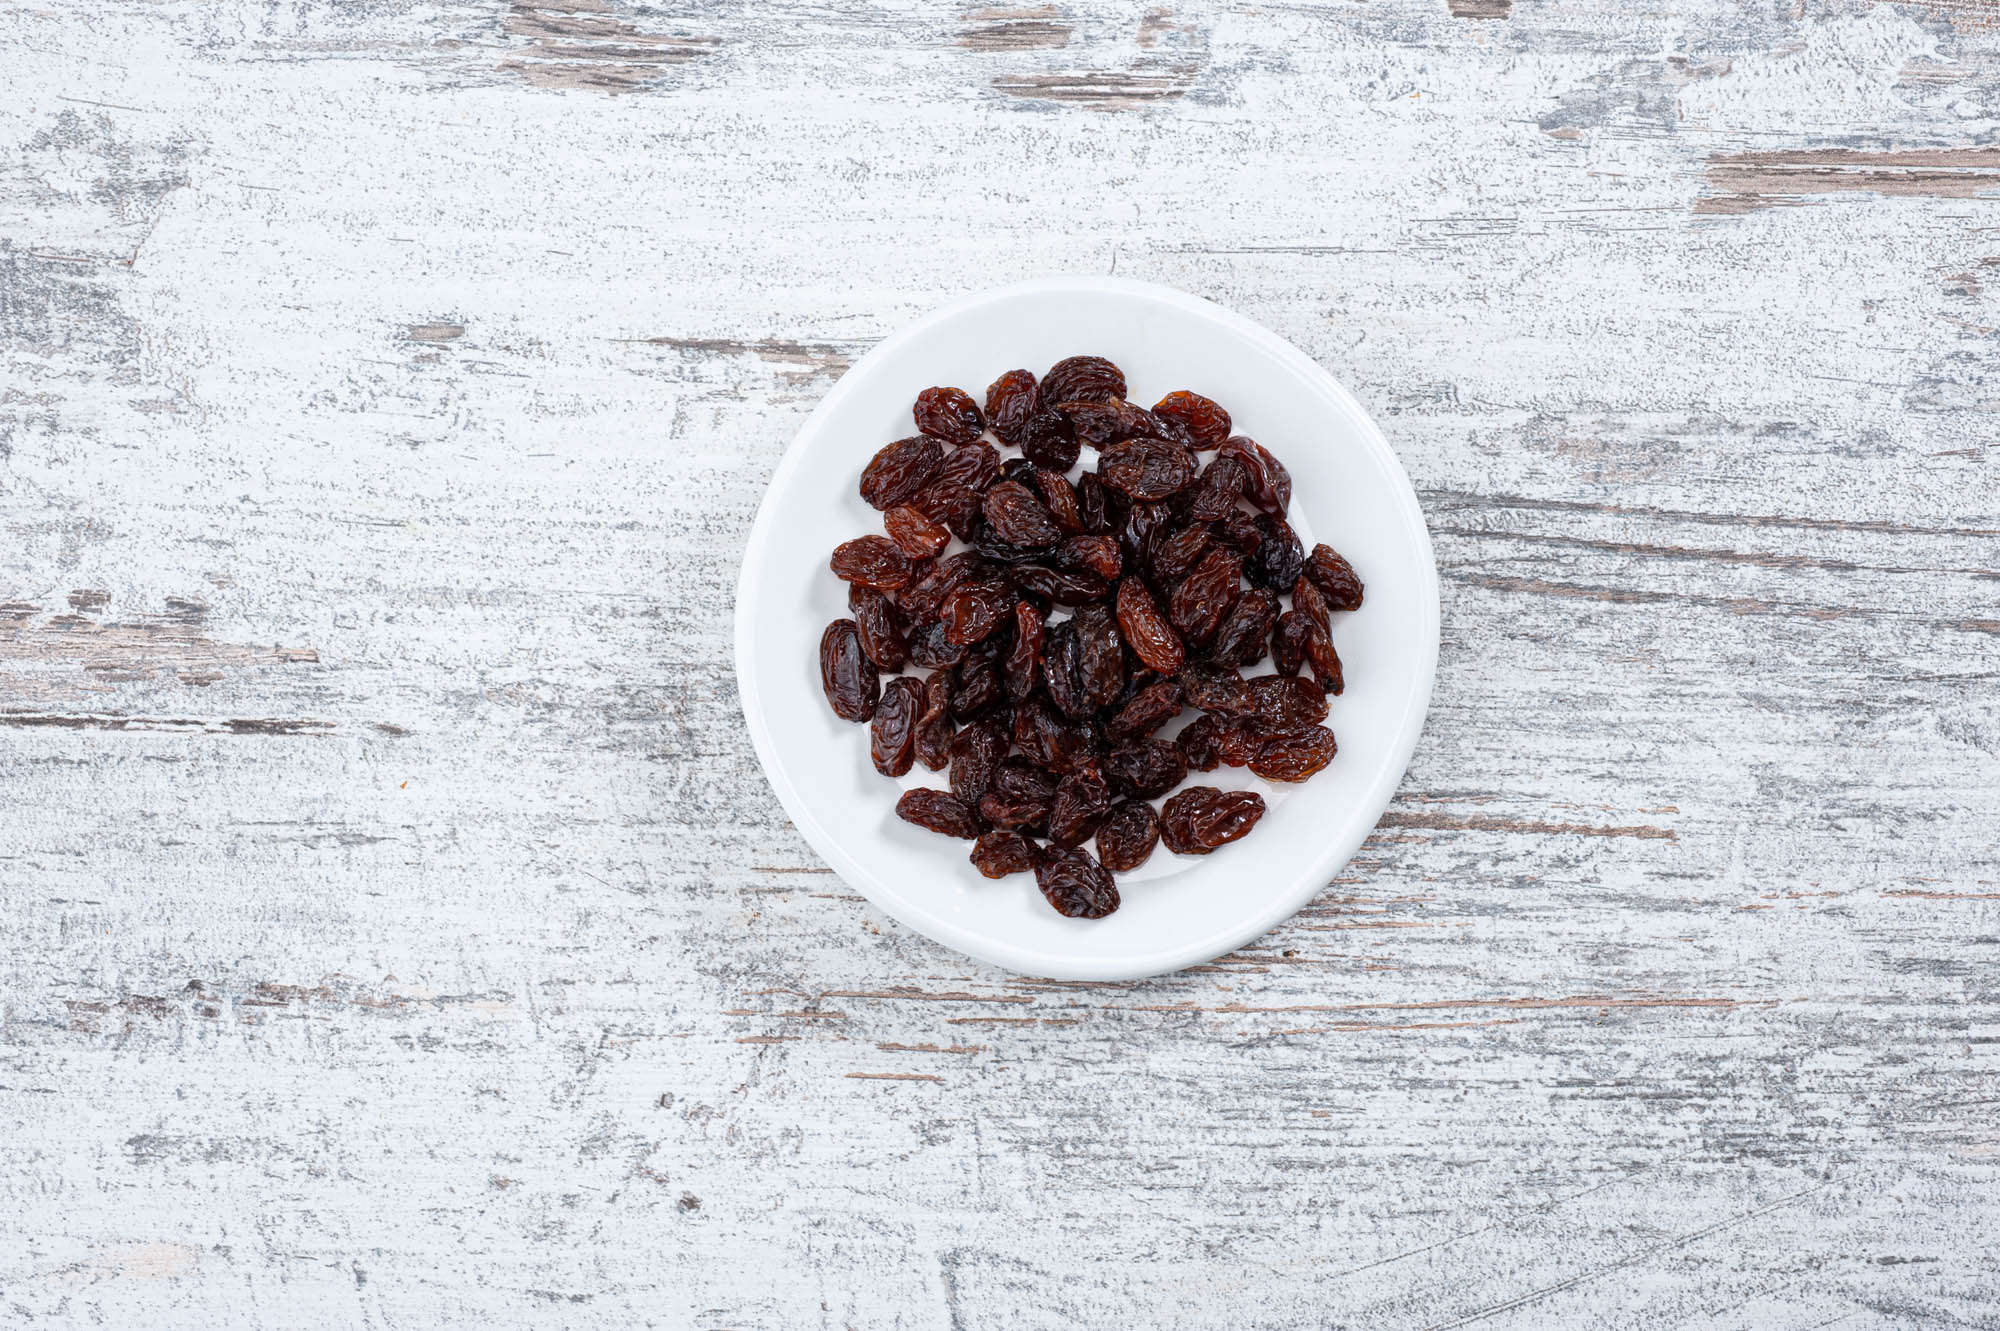 Raisin, dried fruit